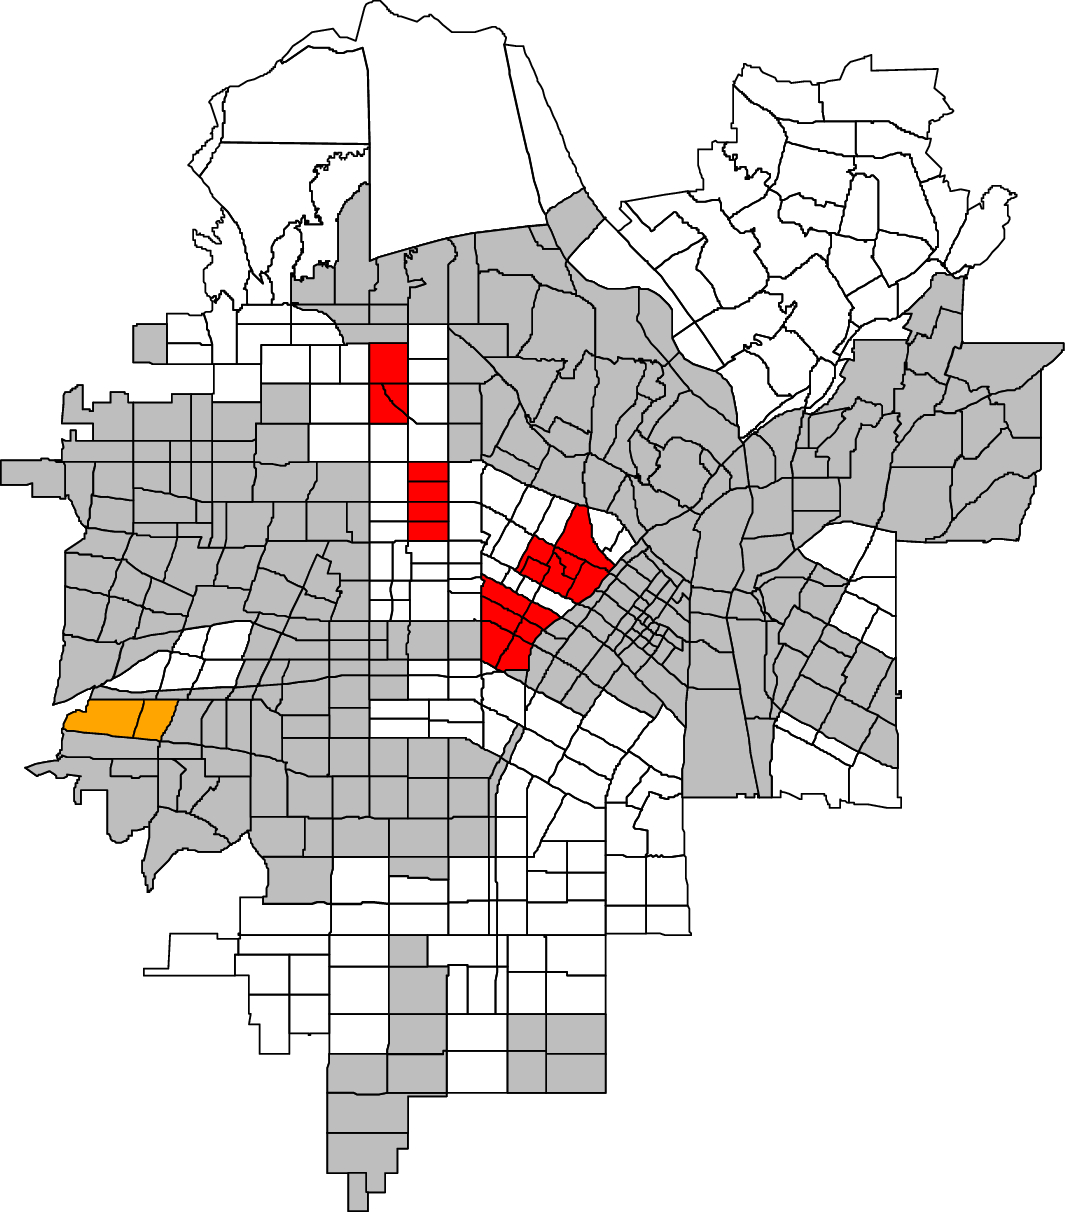 Effect of Gang Injunctions on Crime: A Study of Los Angeles